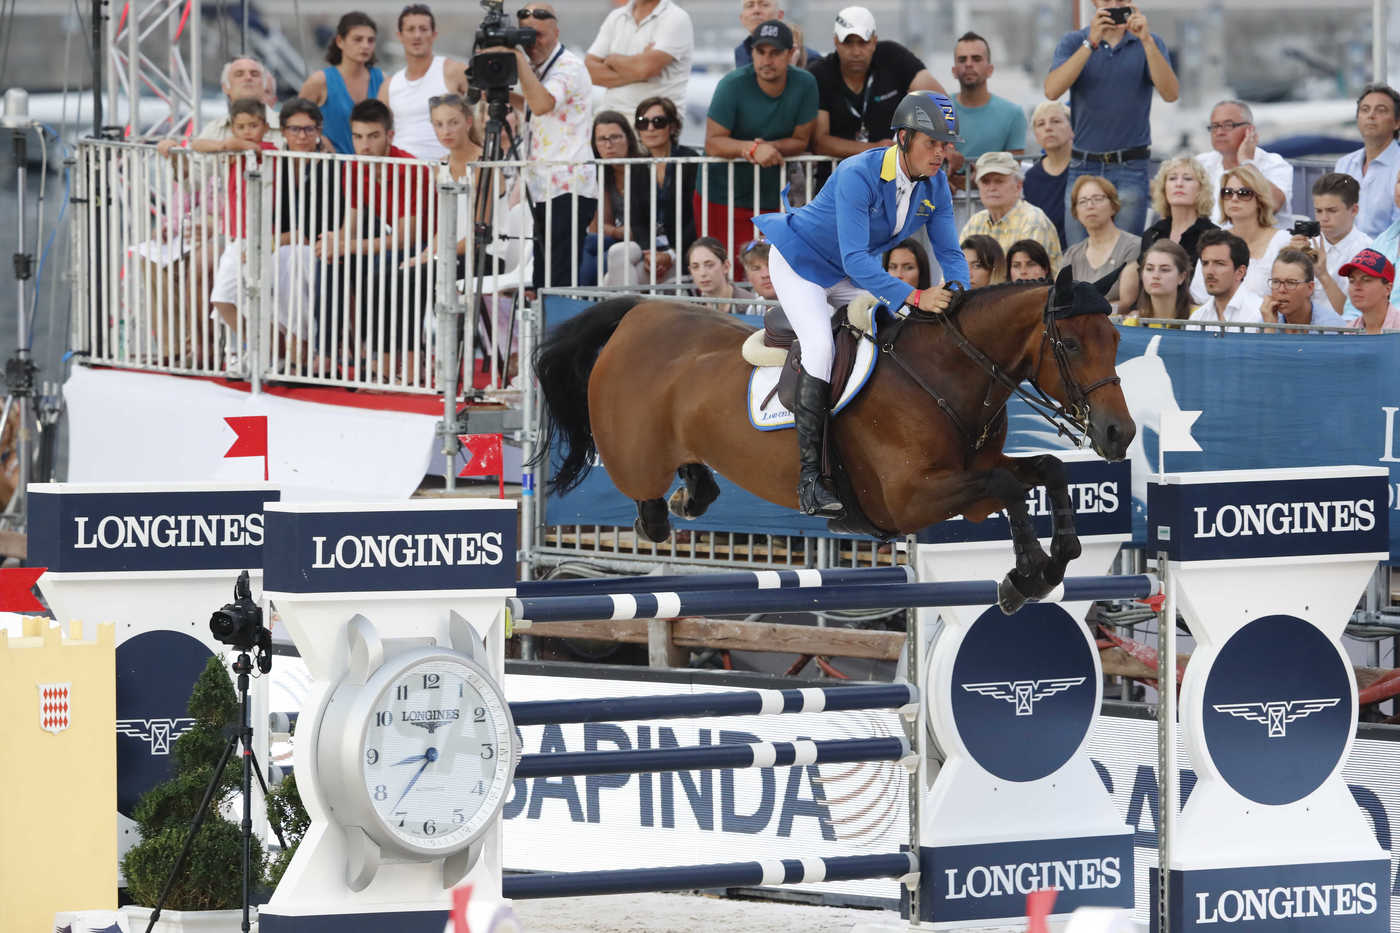 Longines Show Jumping Event: The riders of the Longines Global Champions Tour competed in the magnificent Monaco harbour 1